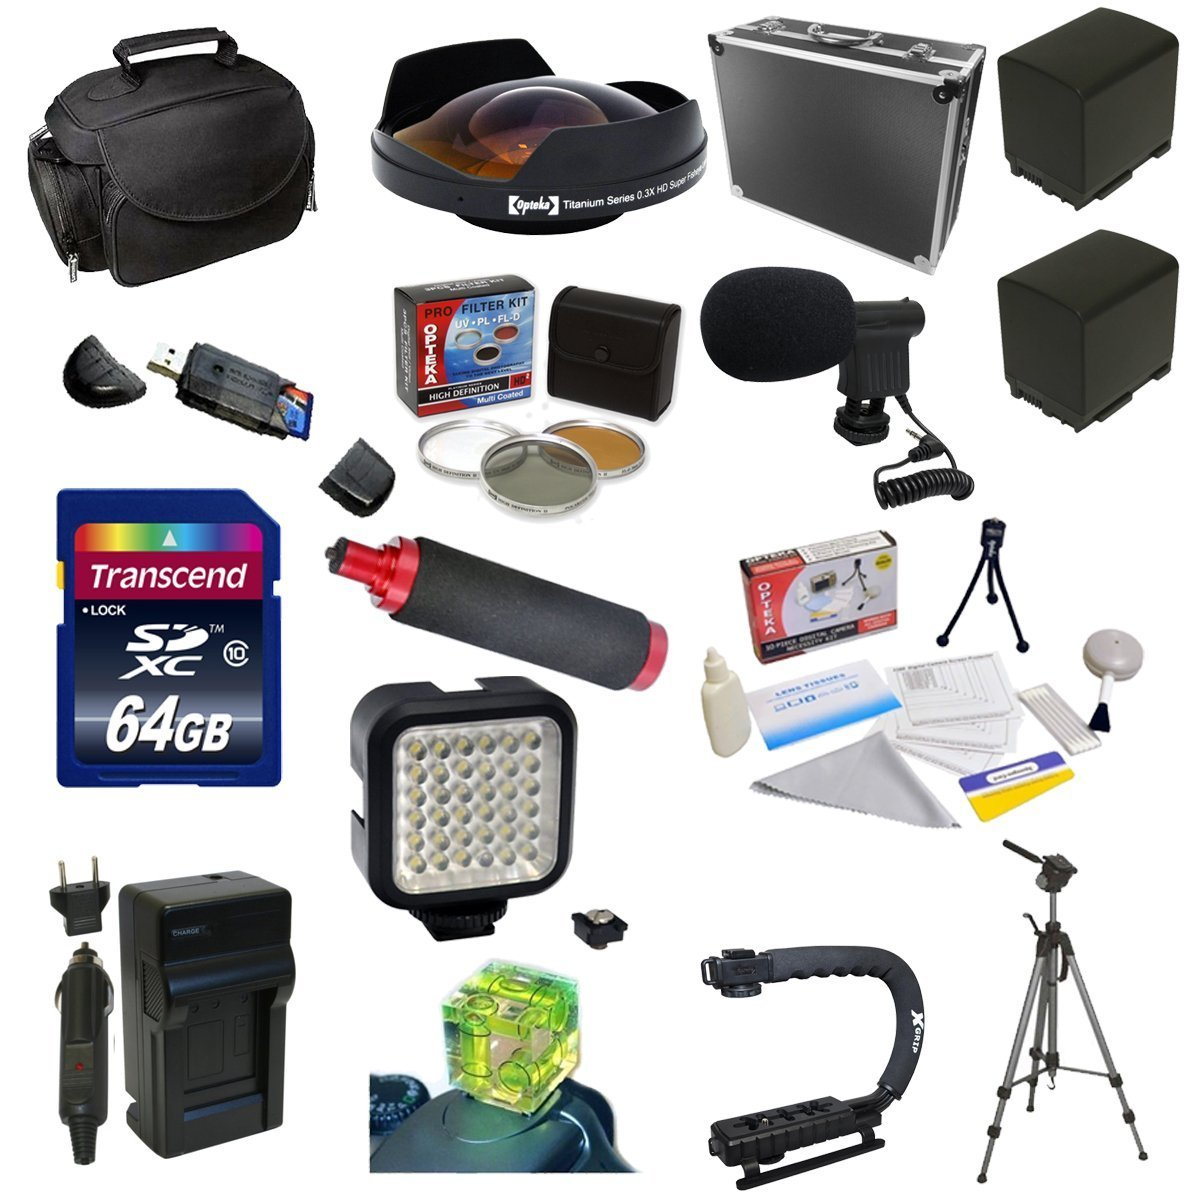 Special Edition All Sport Accessory Package For the Canon Vixia HF G10, HF G20, HF G30, HF S20, HF S21, HF S30, HF S200 Includes 64GB High Speed Error Free SDHC Memory Card + Professional 5 Piece Filter Kit (UV, CPL, FL, ND4 and 10x Macro Lens) + 0.3X Hig by Opteka